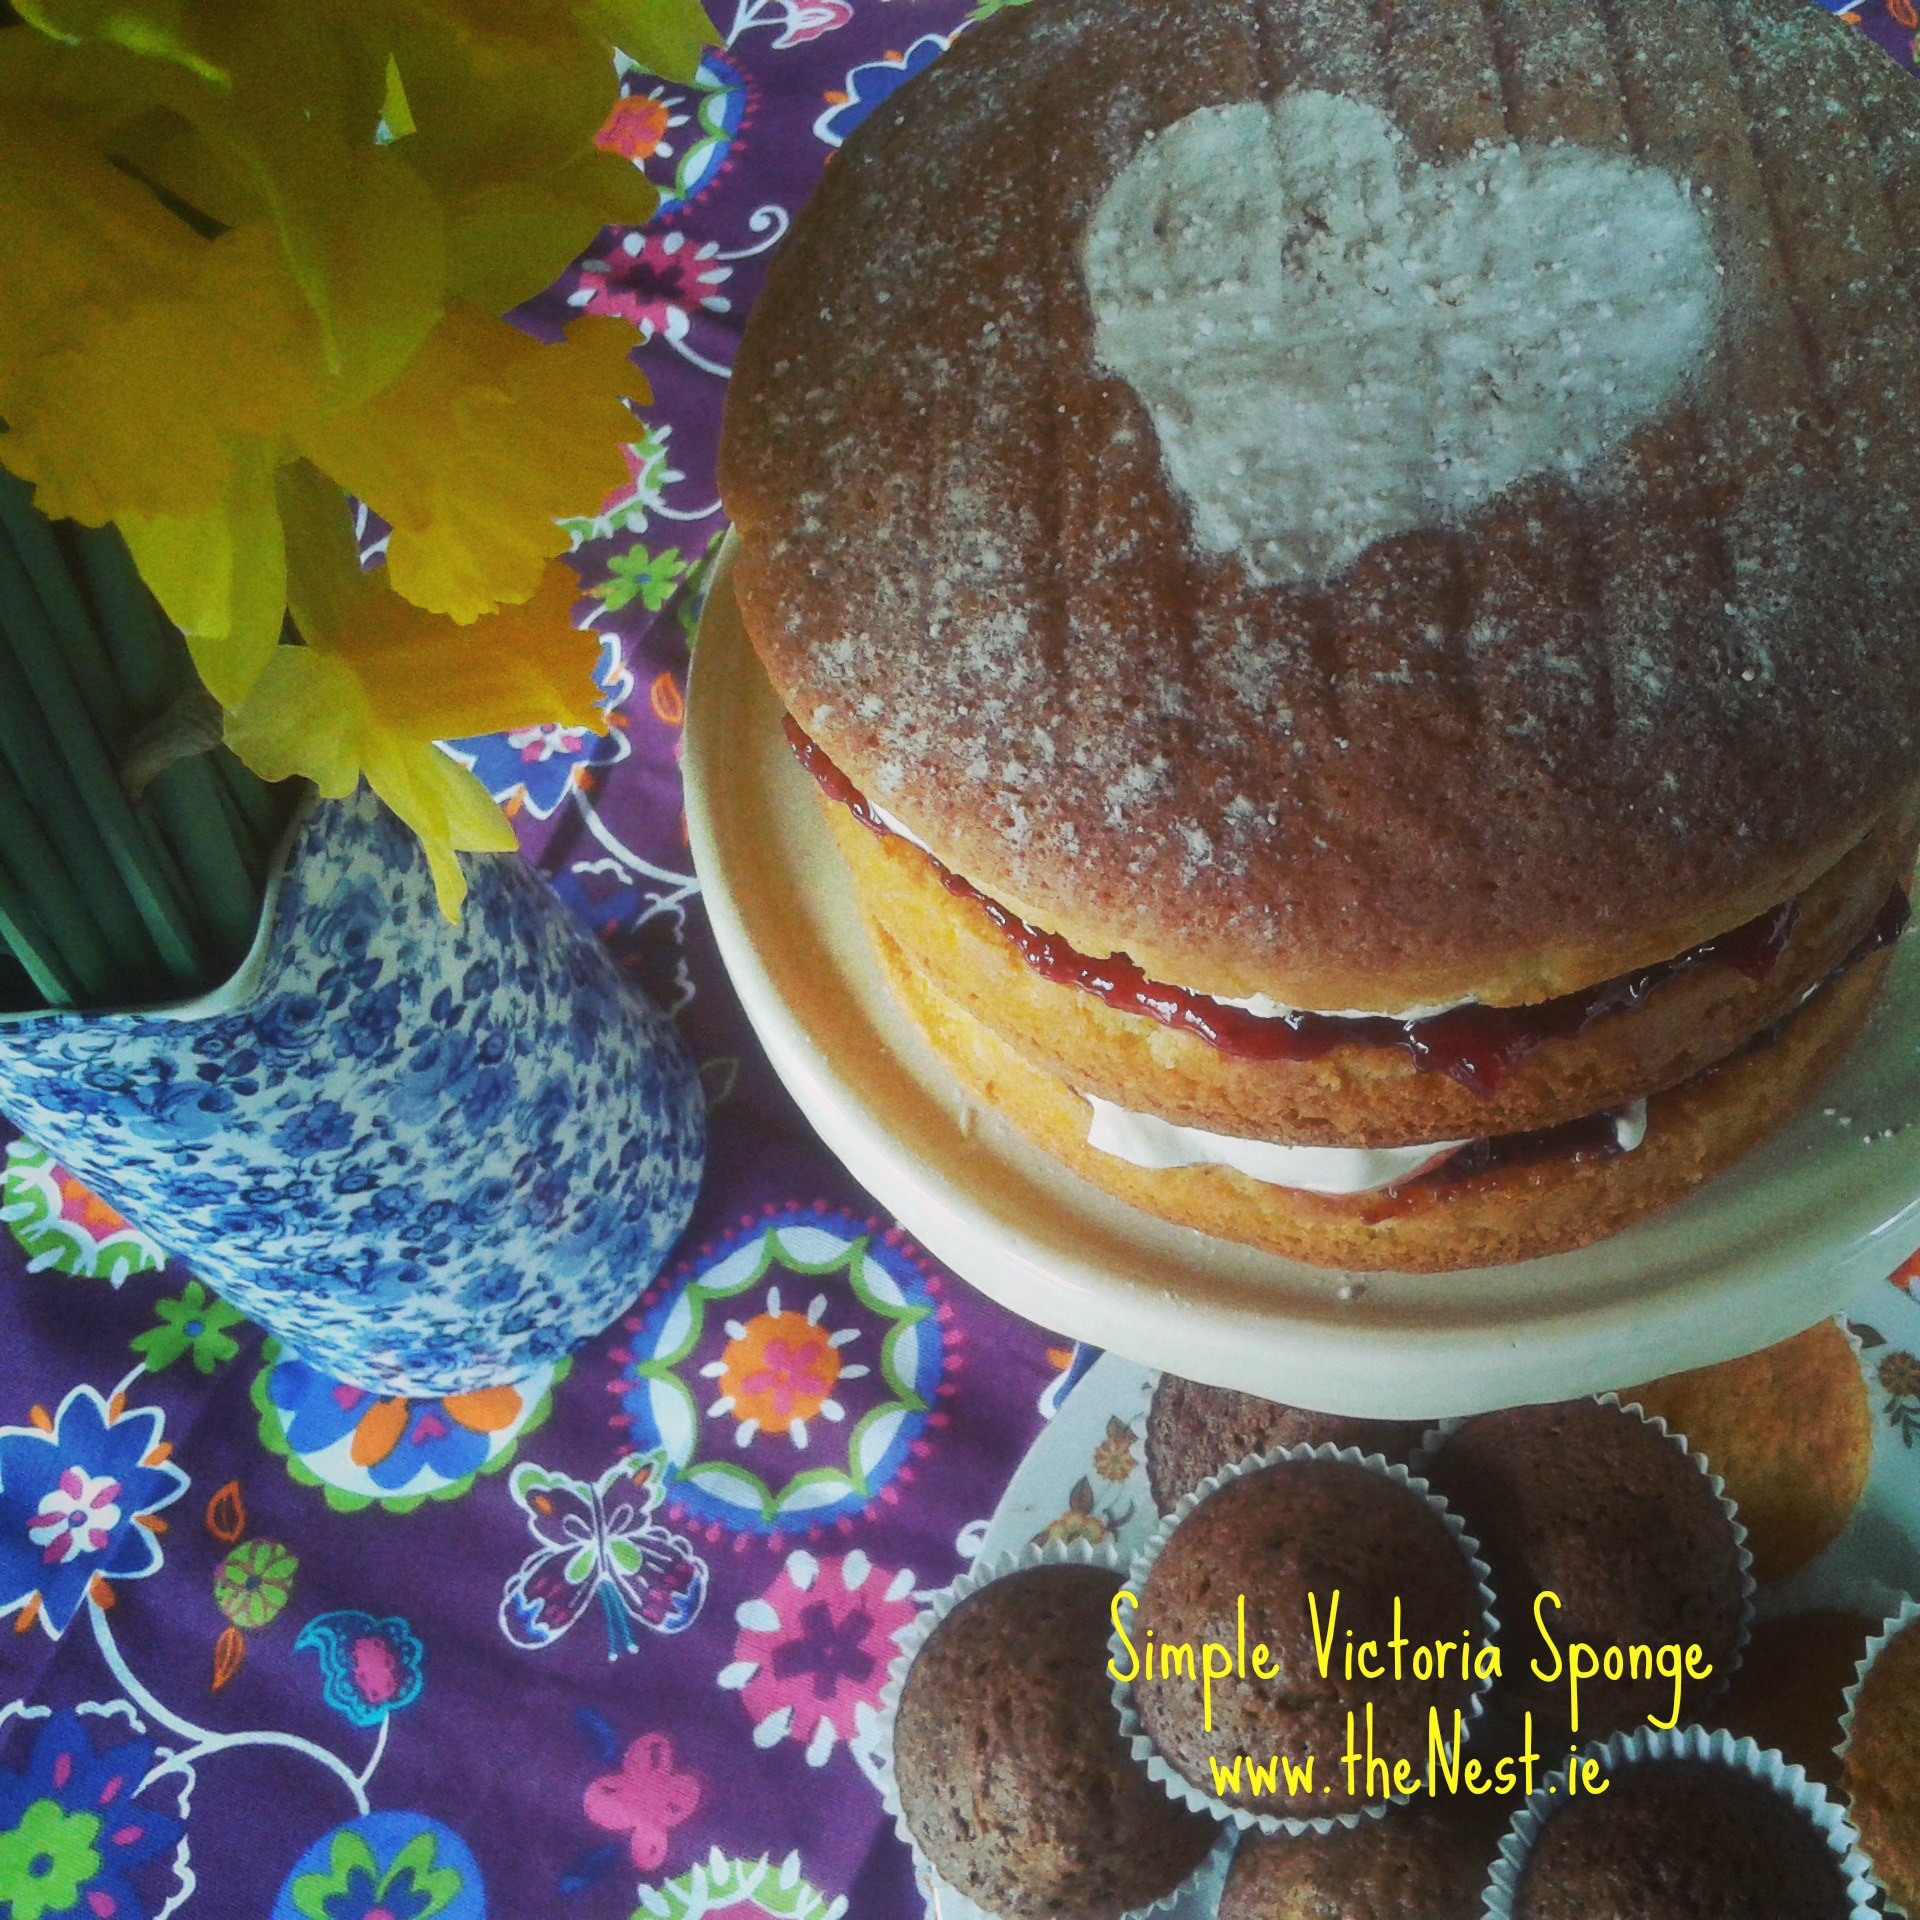 Reasons for Cake (Simple and delicious Victoria Sponge Recipe)